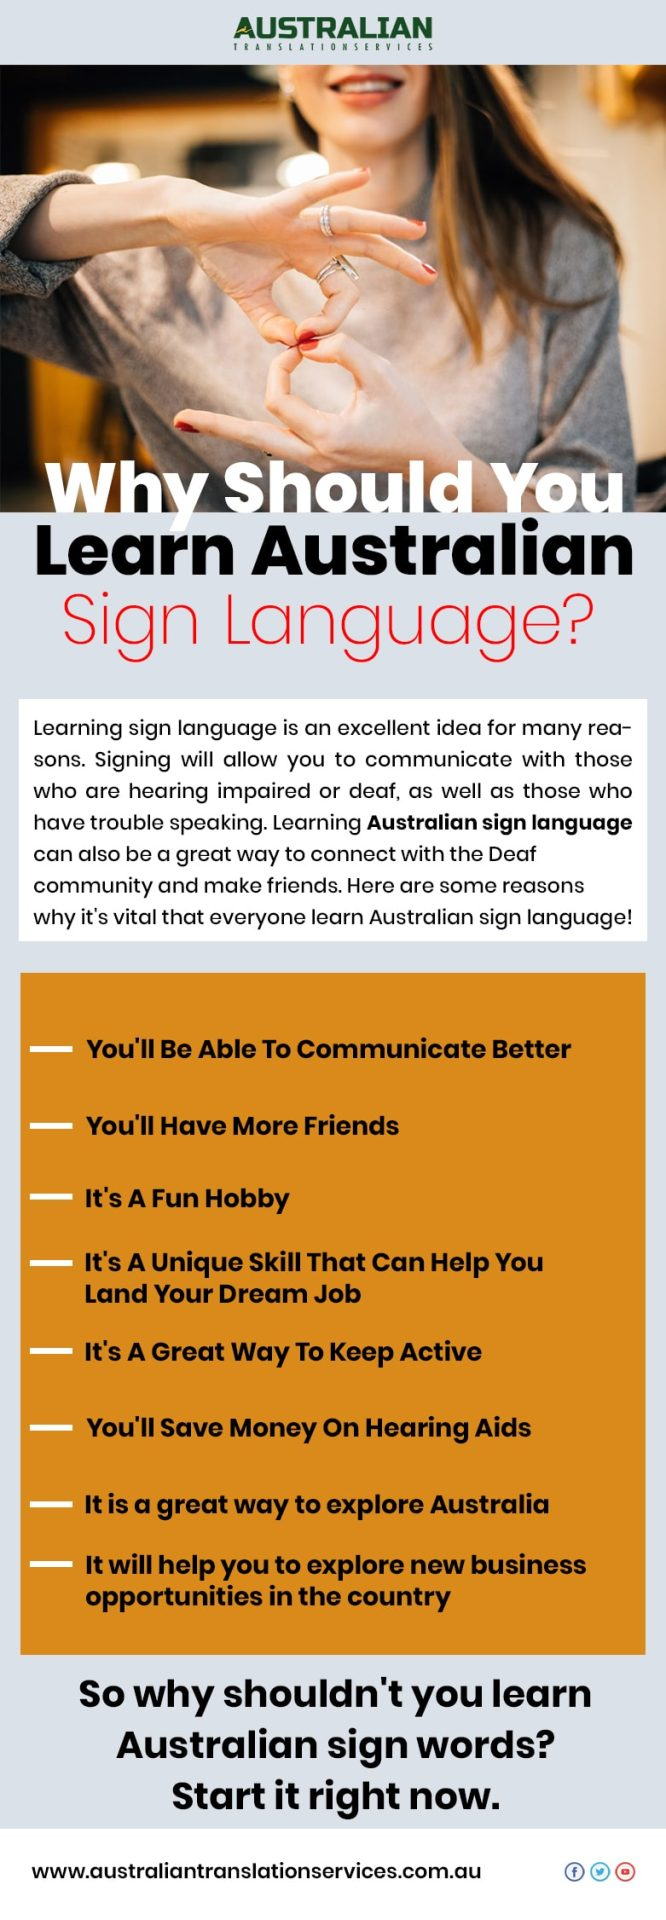 Why Should You Learn Australian Sign Language